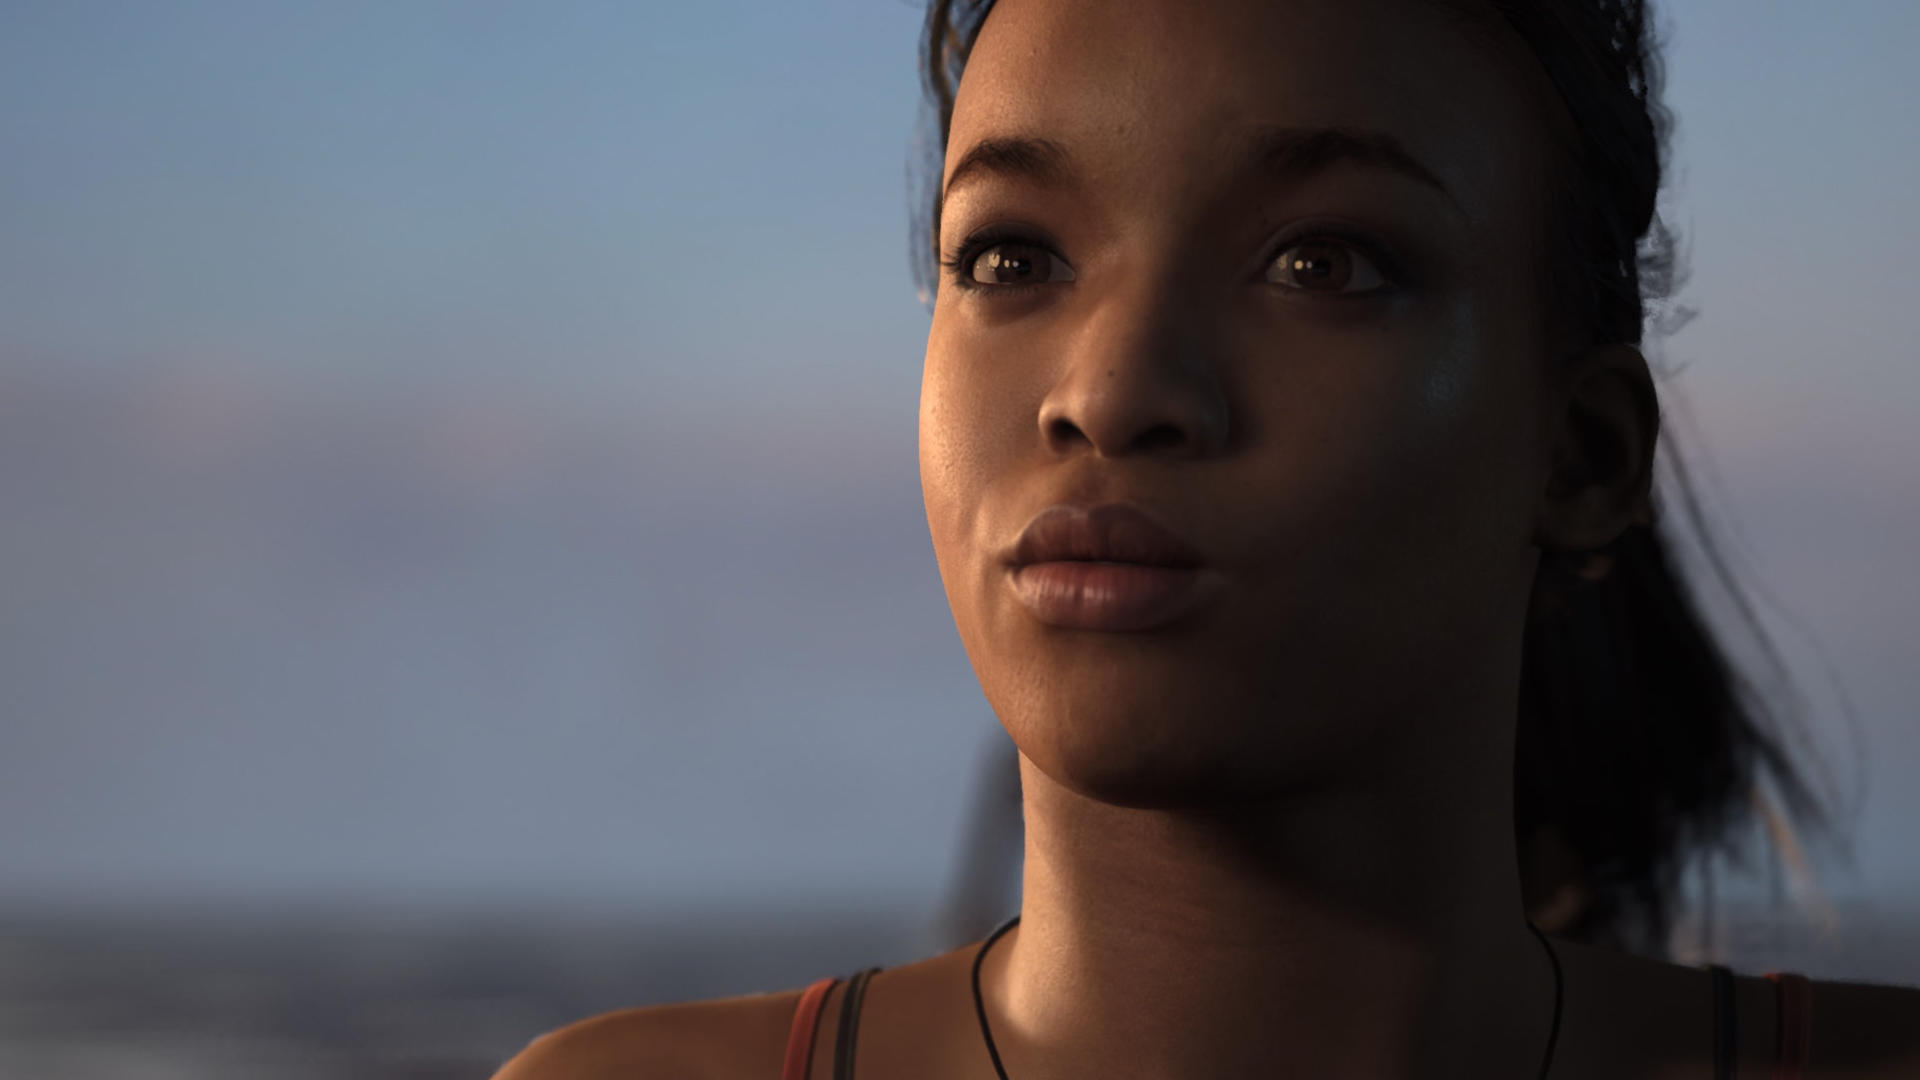 Black woman confidently looking forward with an ocean horizon behind her at sunset